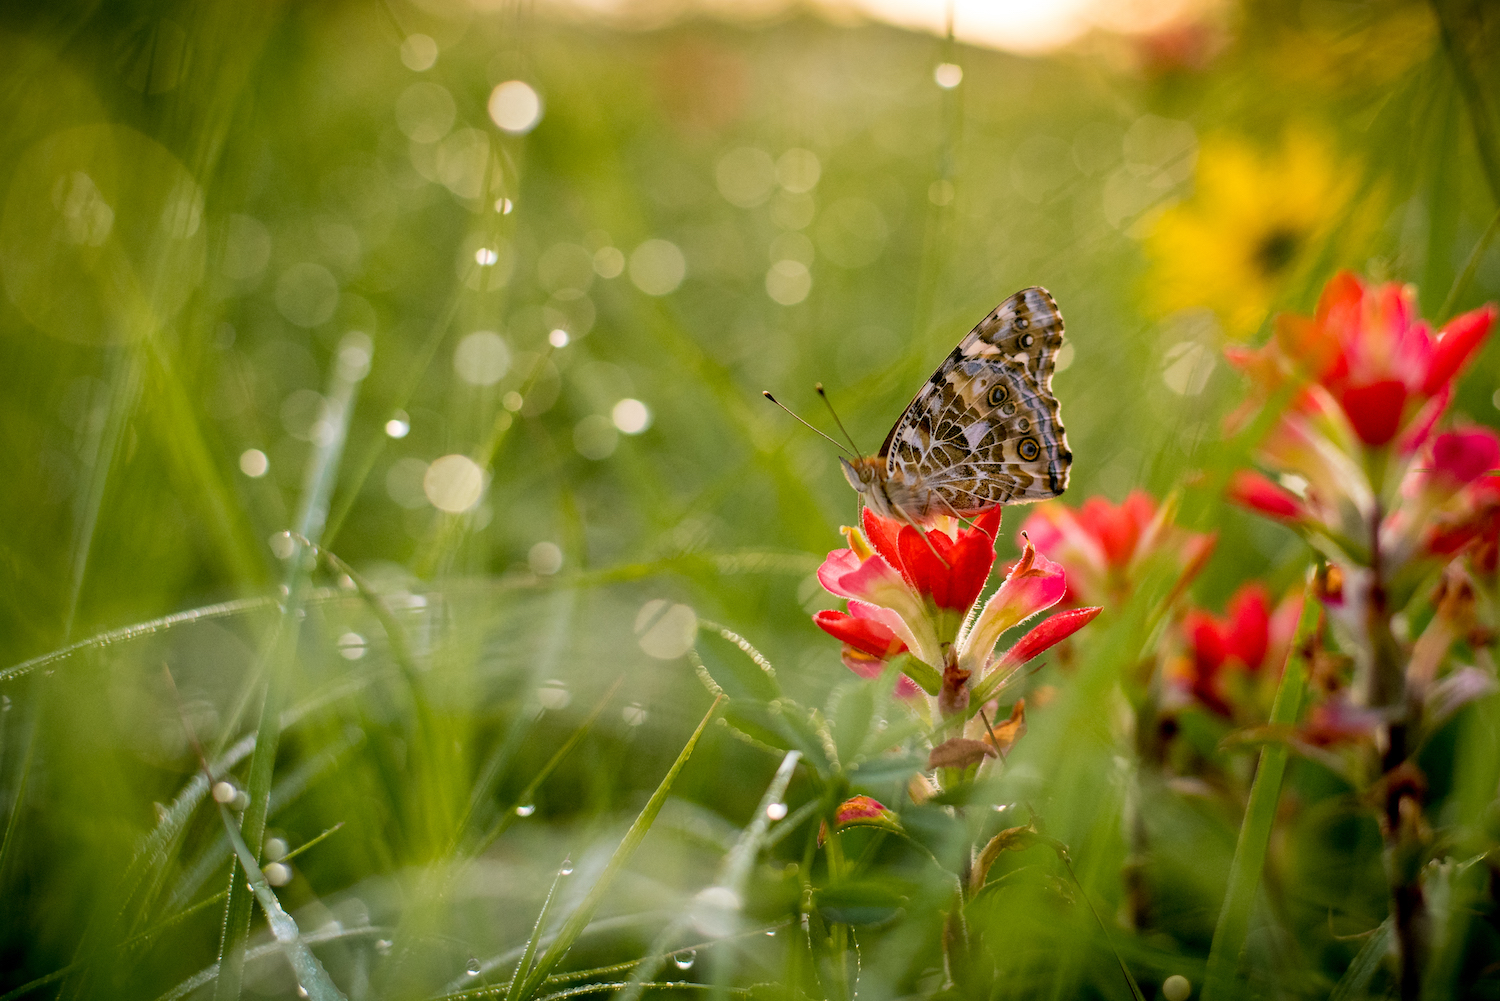 The Importance of Getting the Image Right In-Camera - butterfly on a red flower